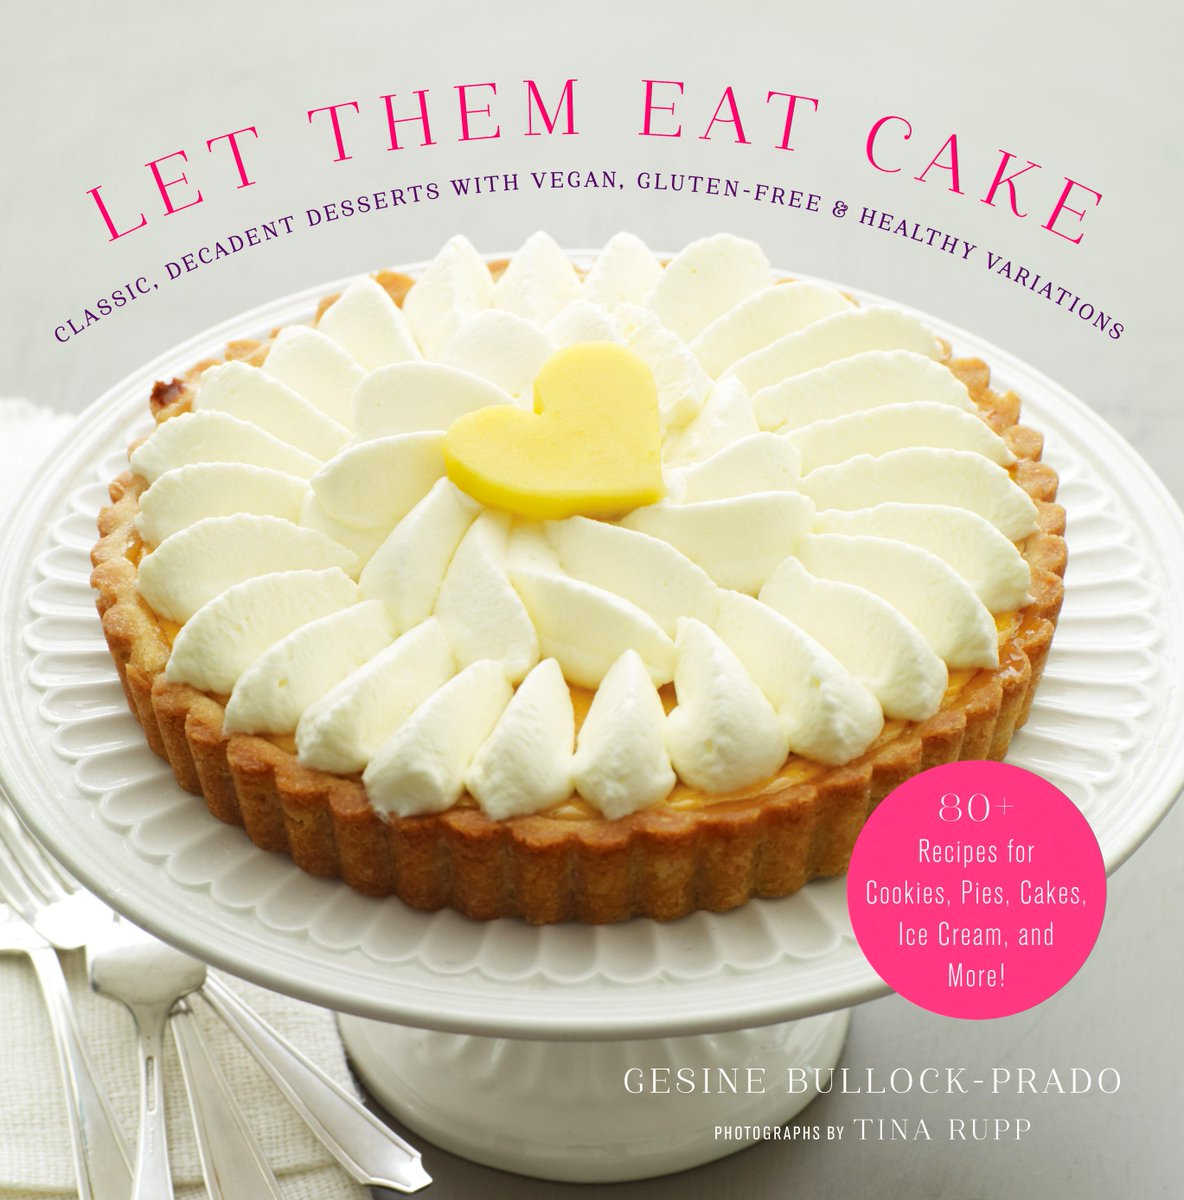 """""""Let Them Eat Cake:  Classic Desserts w/Vegan, Gluten-Free & Healthy Options"""" out today!!!  http://t.co/bt0sORvmNt http://t.co/ndmd7oKSlh"""